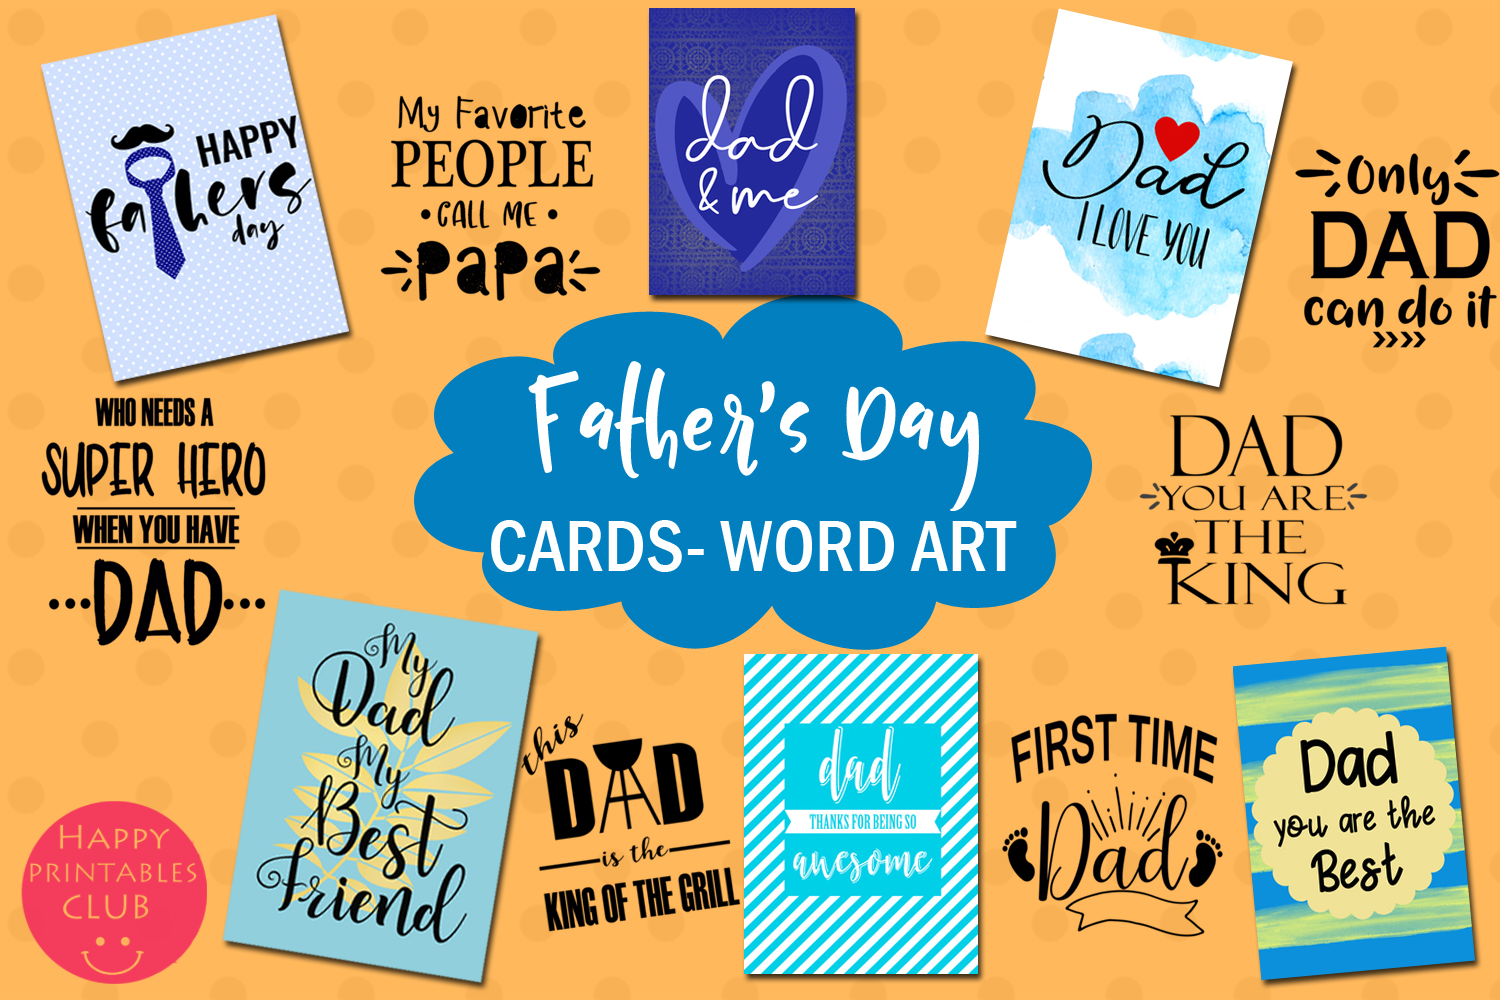 Download Free Father S Day Cards Photo Overlays Graphic By Happy Printables Club Creative Fabrica for Cricut Explore, Silhouette and other cutting machines.